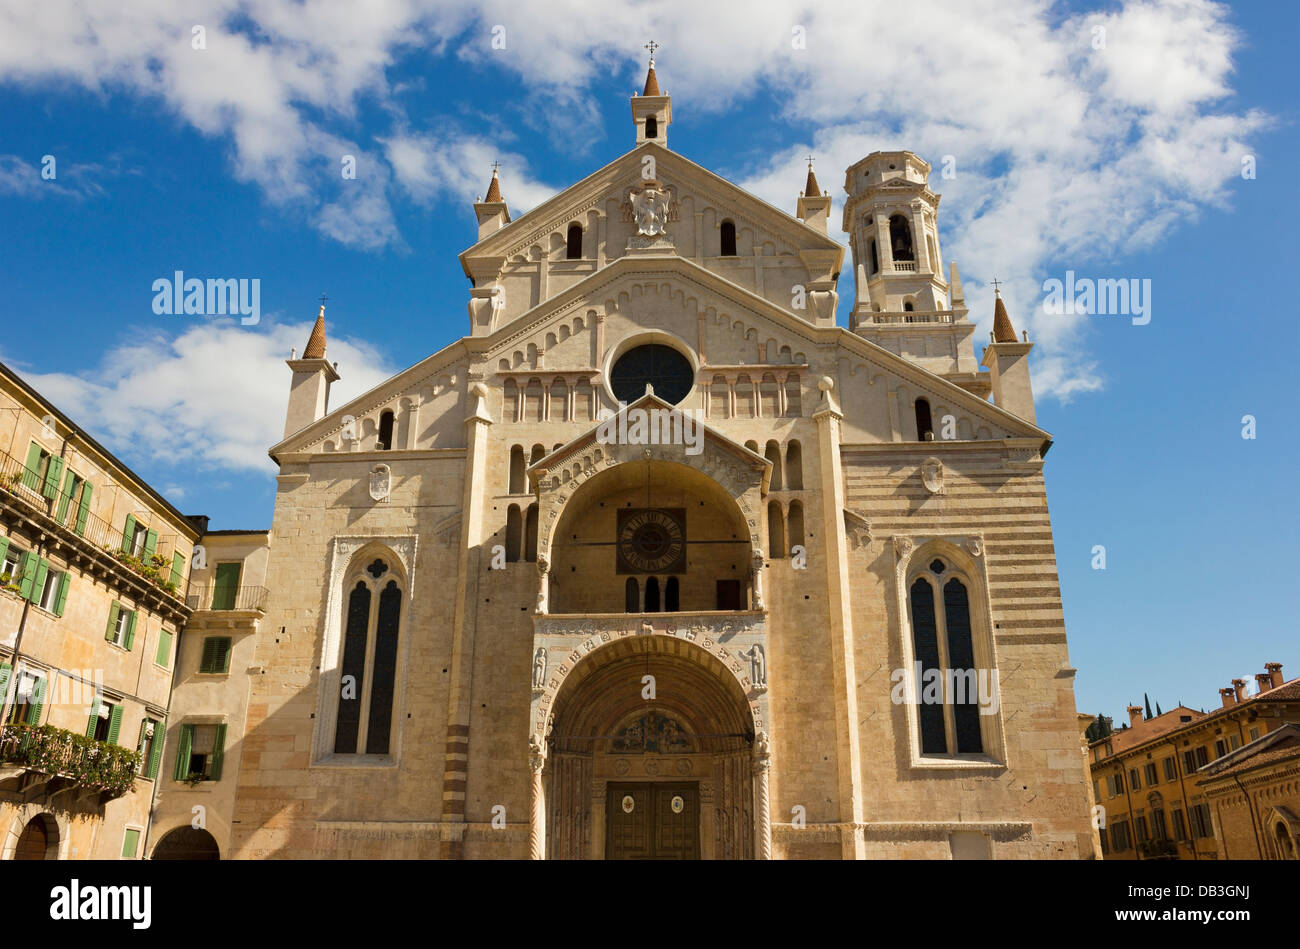 Angle facade shot of cathedral of Verona named Santa Maria Matricolare in a bright sunny day over blue sky. - Stock Image